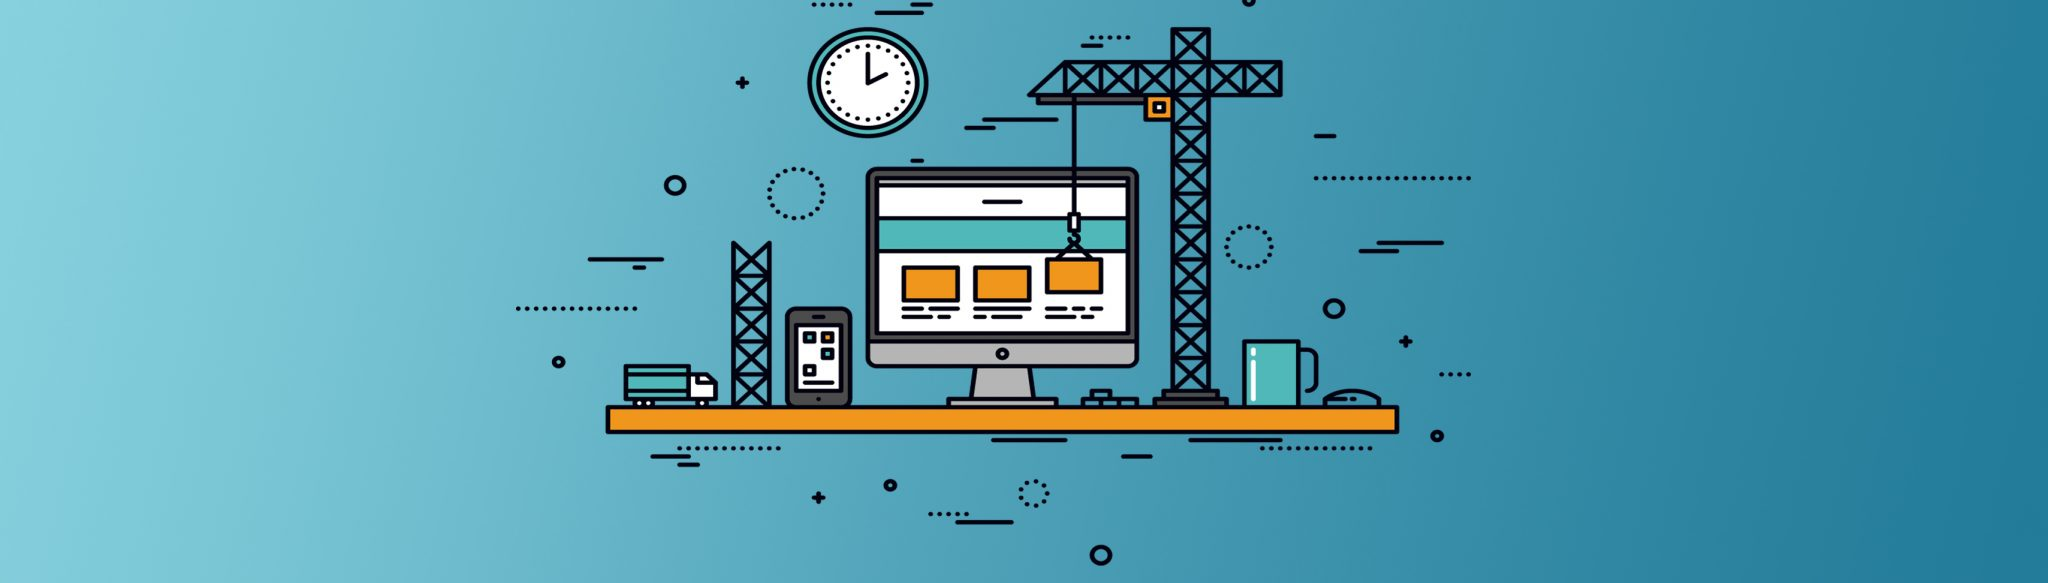 Amplify your IT career by becoming an infrastructure developer